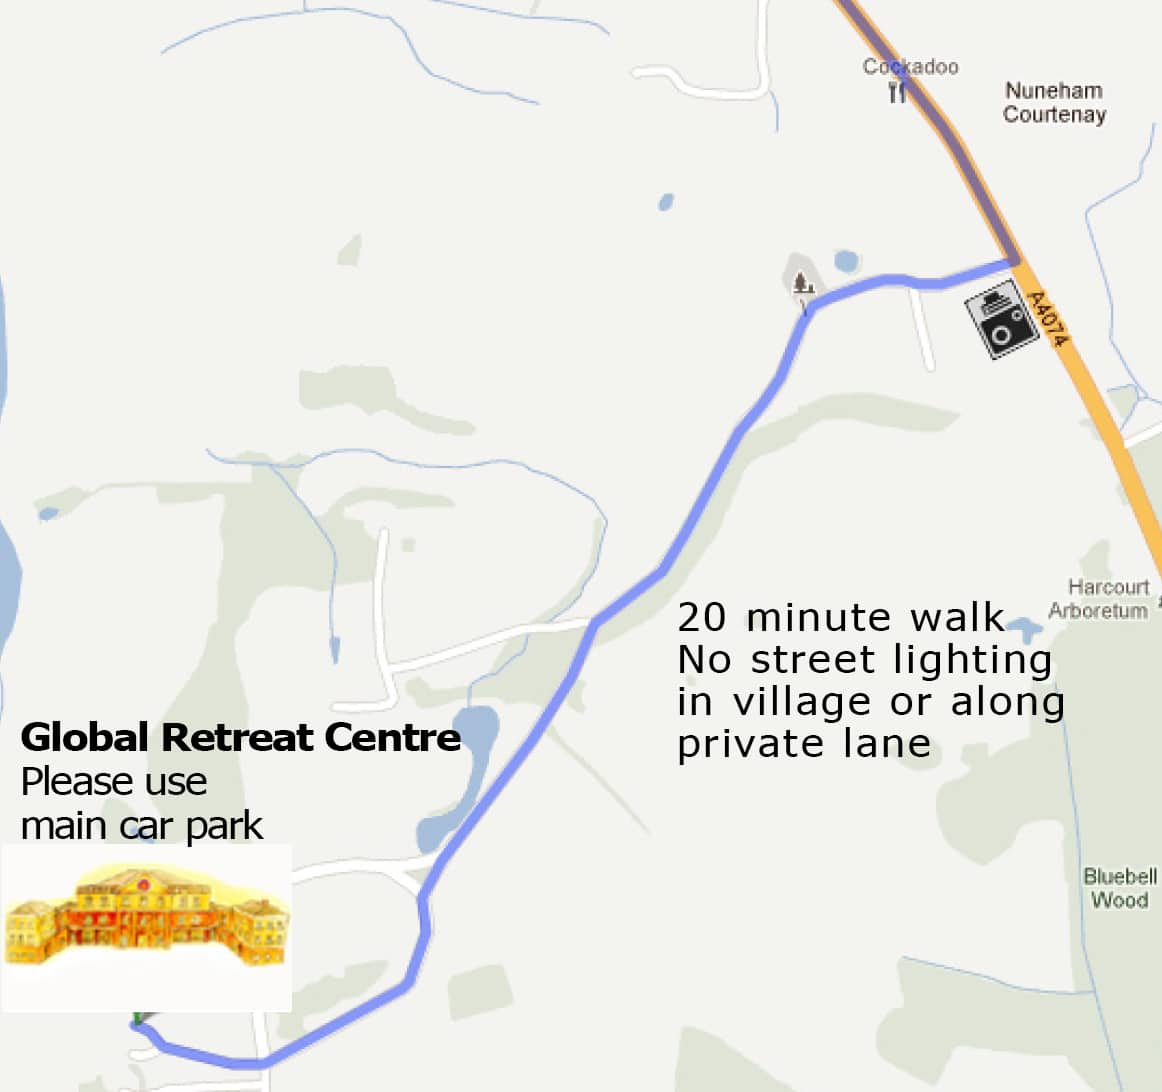 Directions-to-Global-Retreat-Centre-from-Nuneham-pic-with-20min-walk